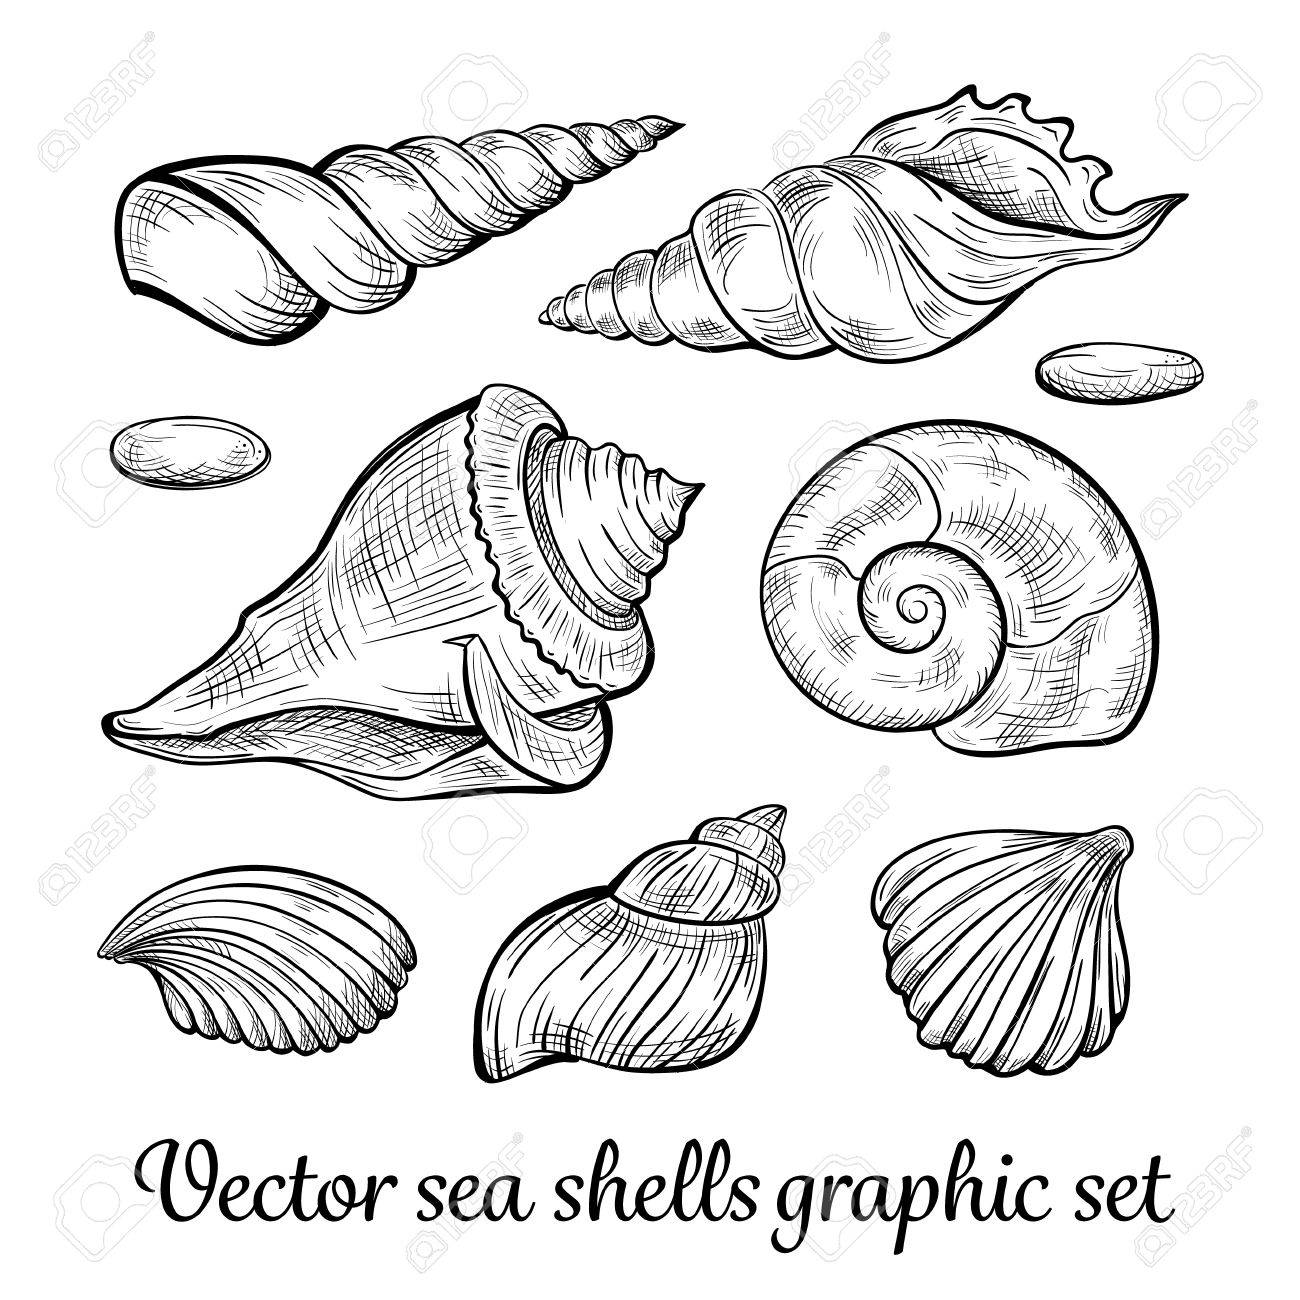 Black and white hand drawn vector seashells collection